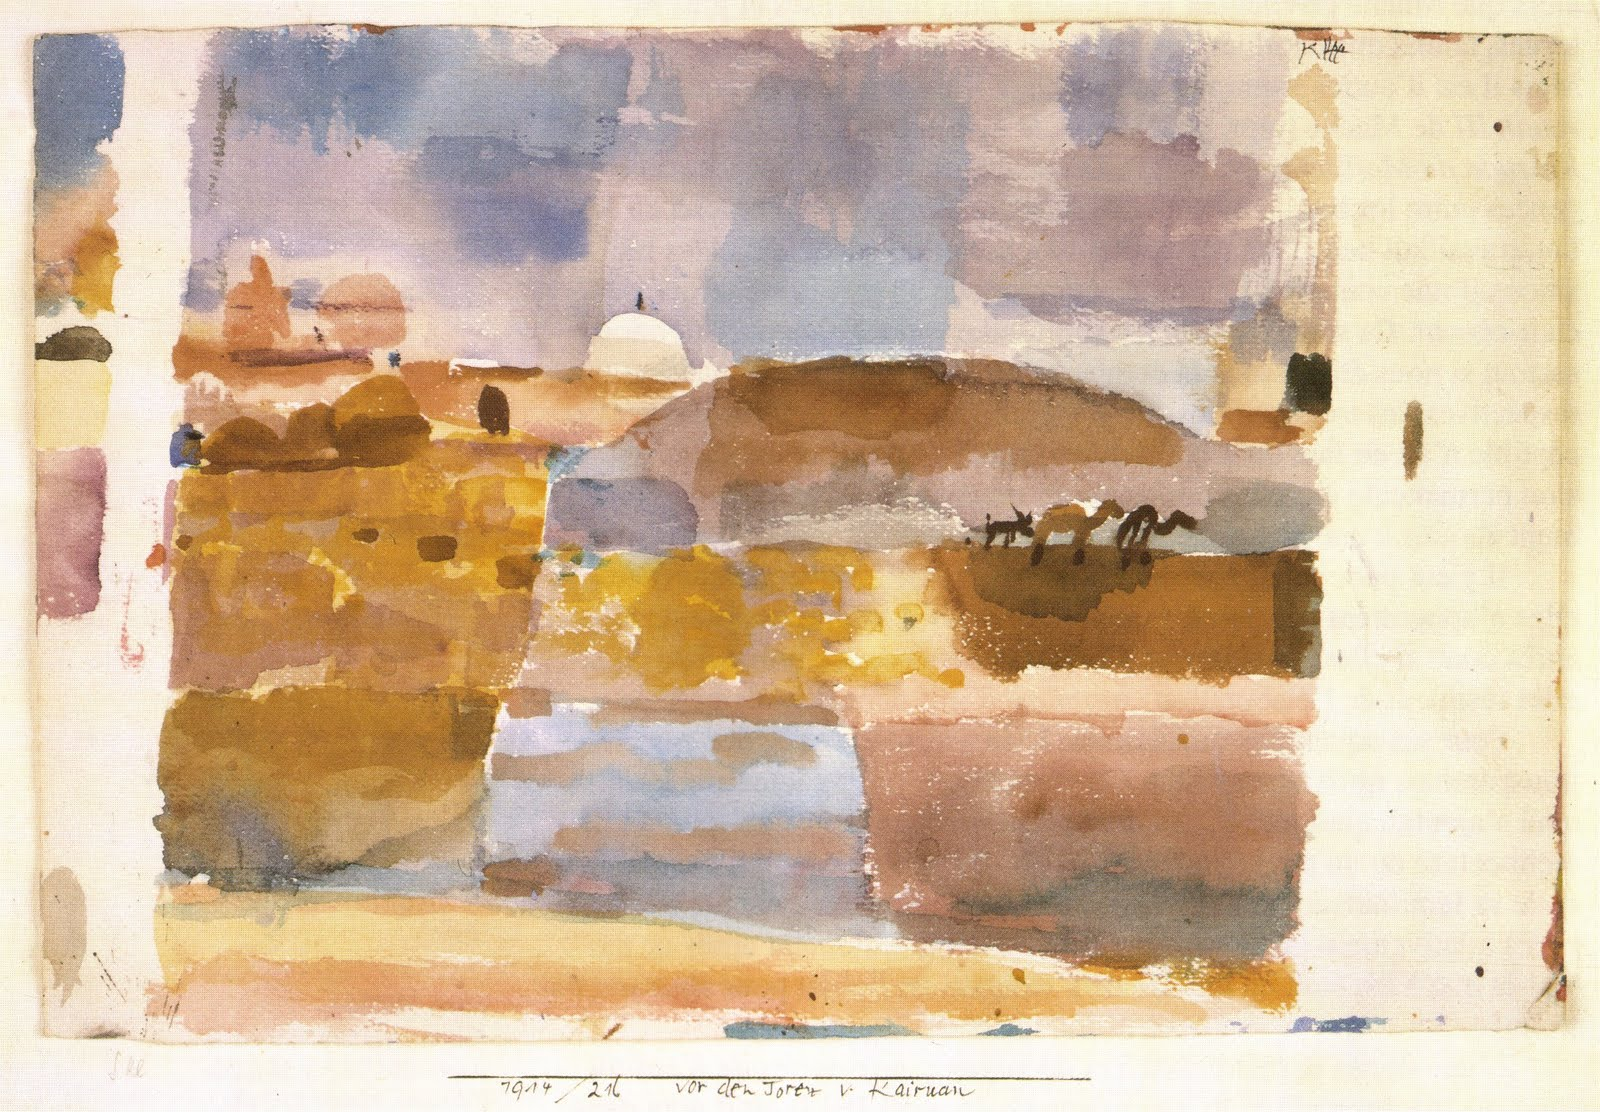 Vor den Toren von Kairuan (Before the Gates of Kairouan), 1914.